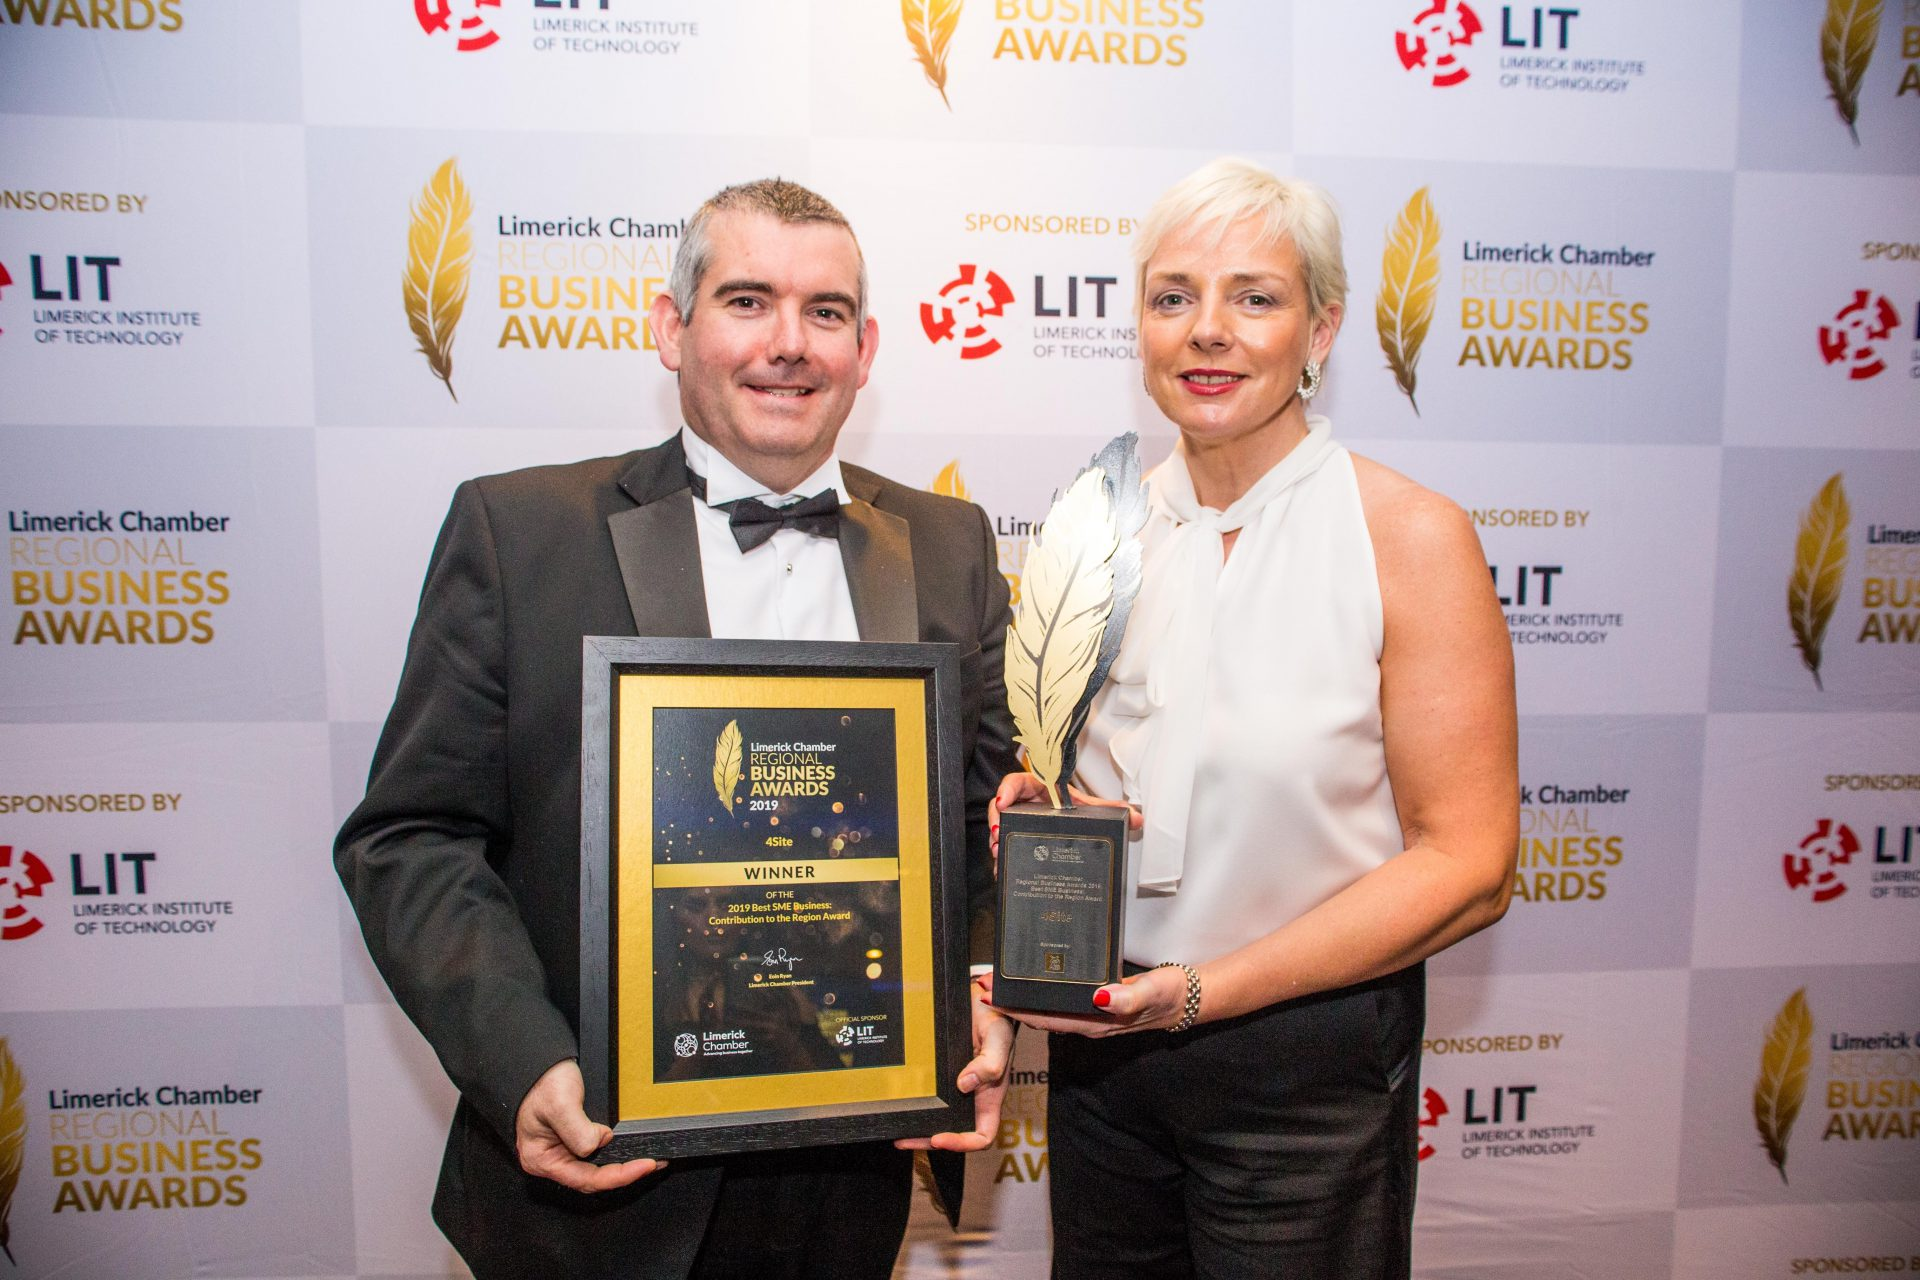 4site win Best SME Business Contribution to the Region from the Limerick chamber of commerce